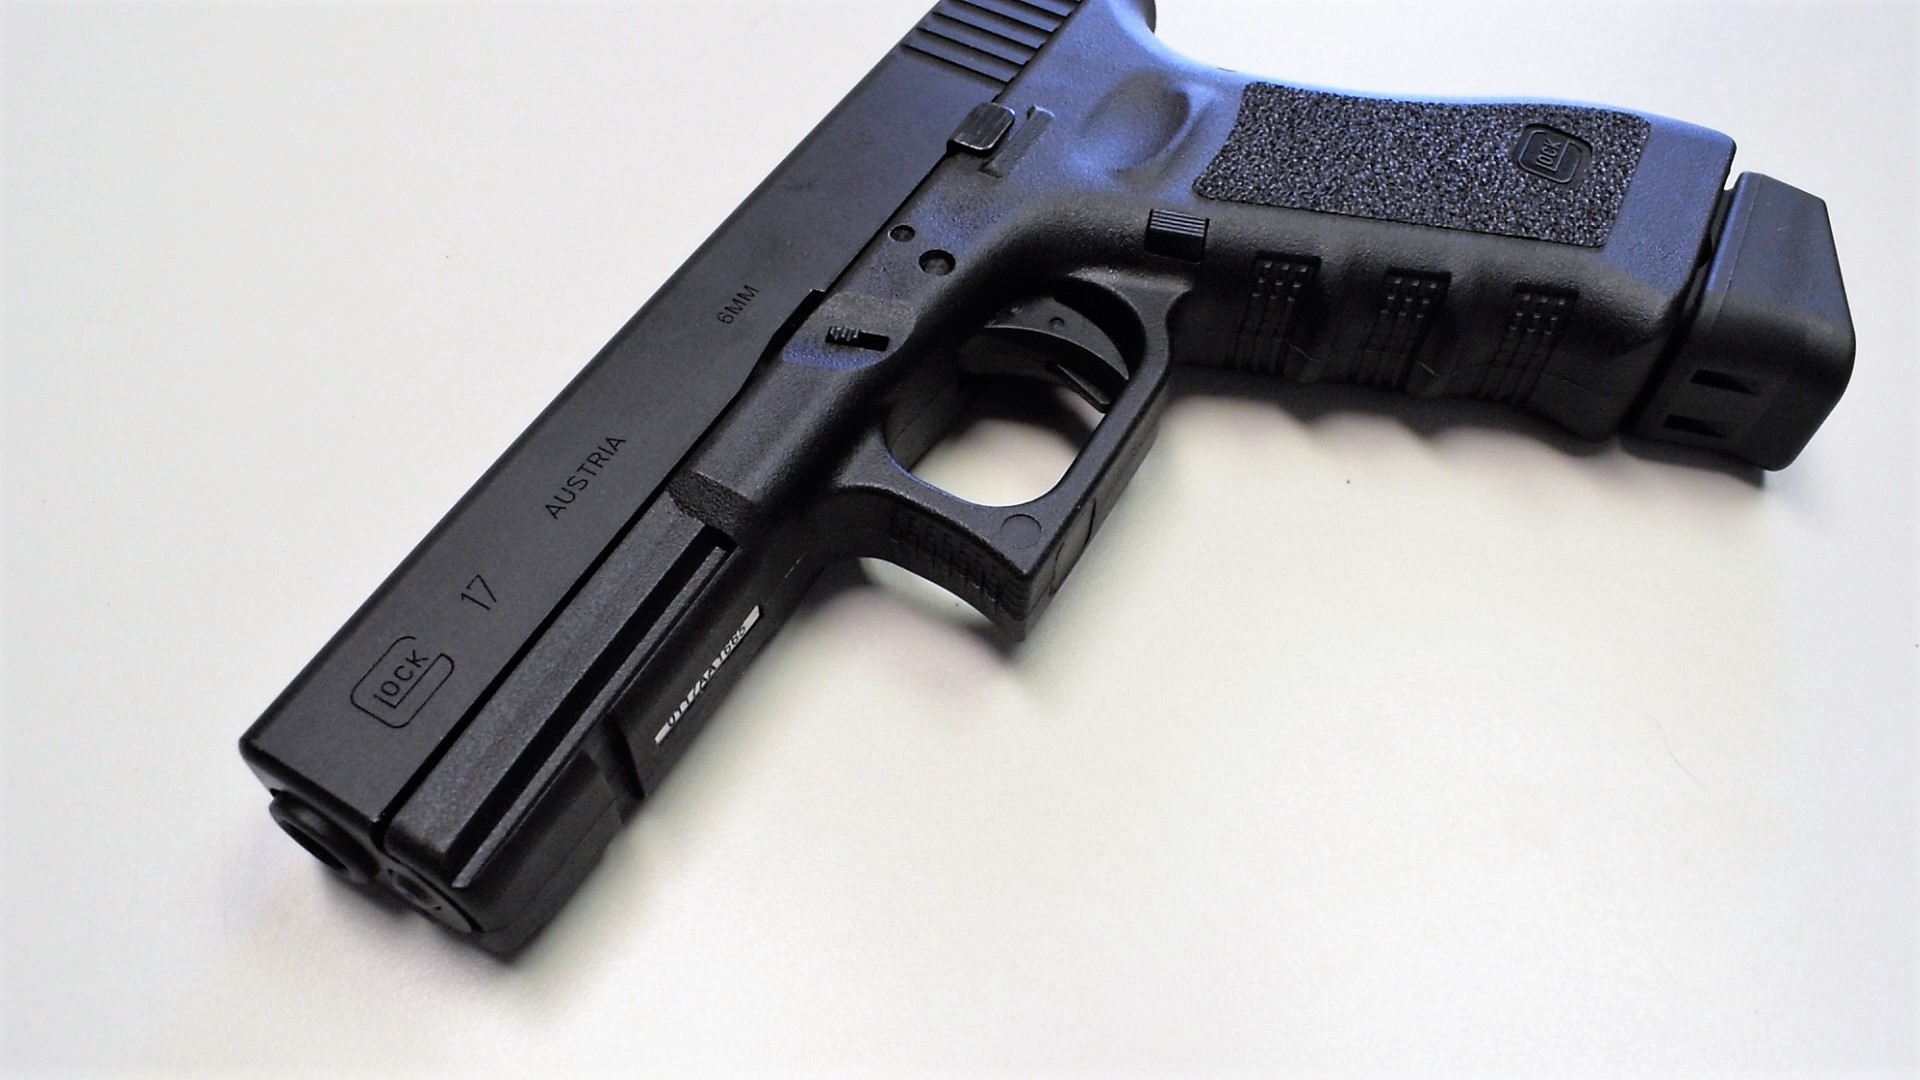 Glock Officially Licensed Airsoft Training Pistols Fox Air Soft Gun For With Your Department And It Is Going To Fit Standard 17 Holsters Which Really Nice In Terms Of Powering The Pistol